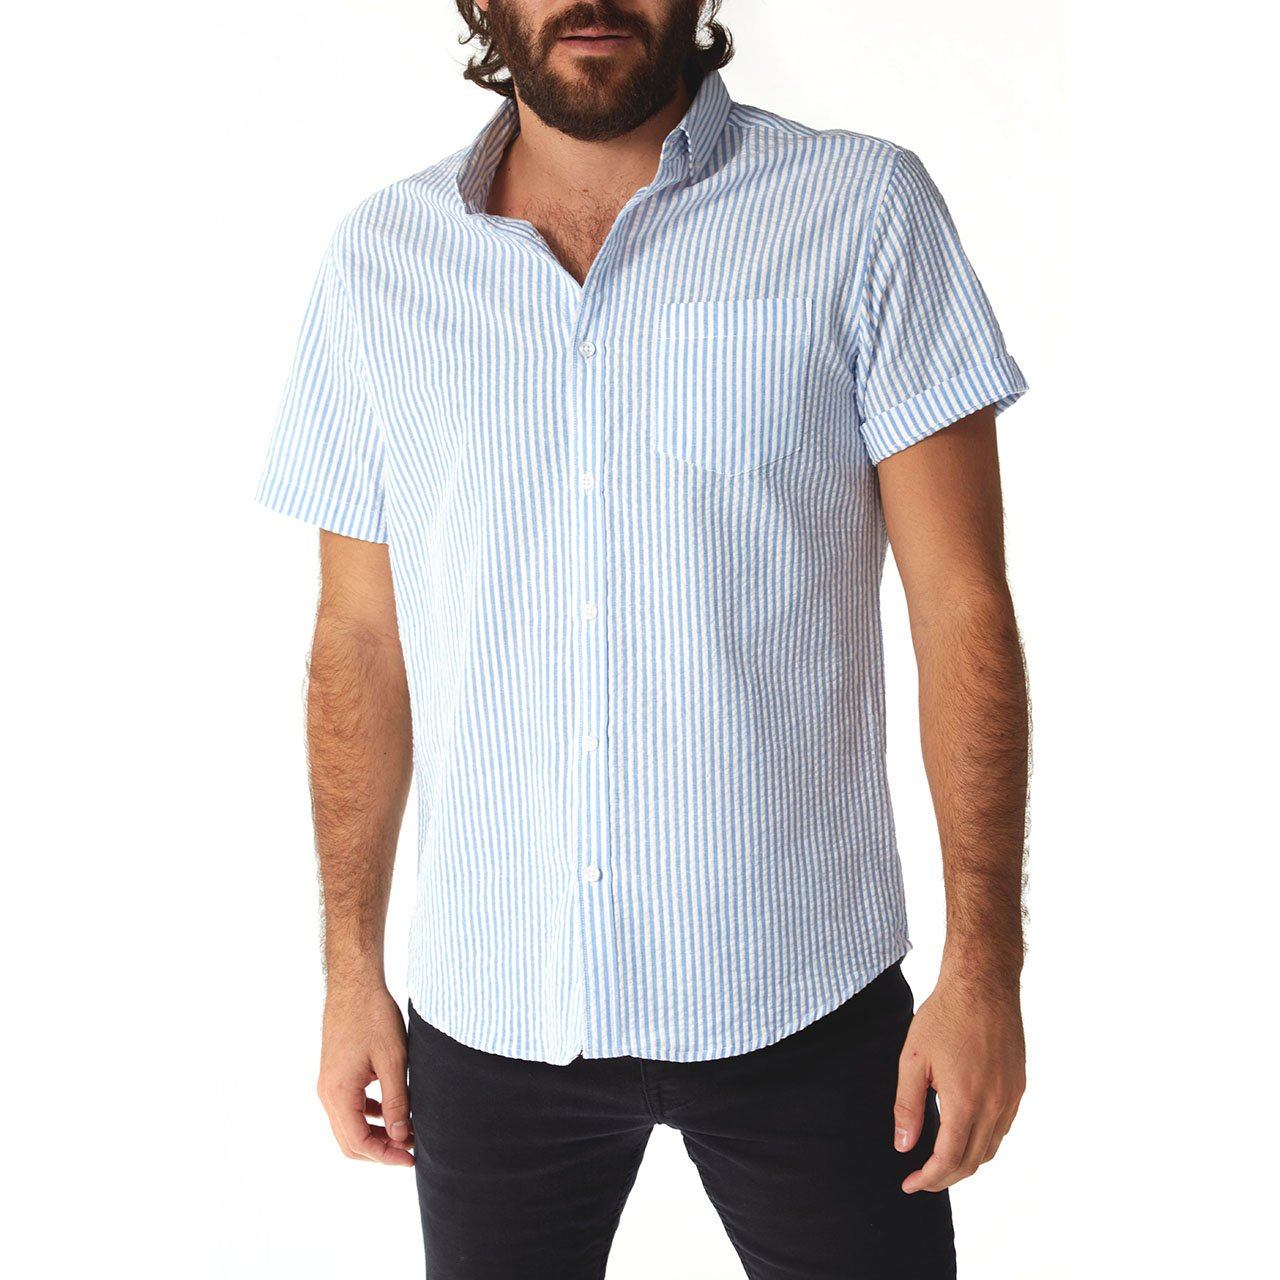 Short Sleeve Shirt, Shirt - Devin Blue Seersucker Striped Shirt